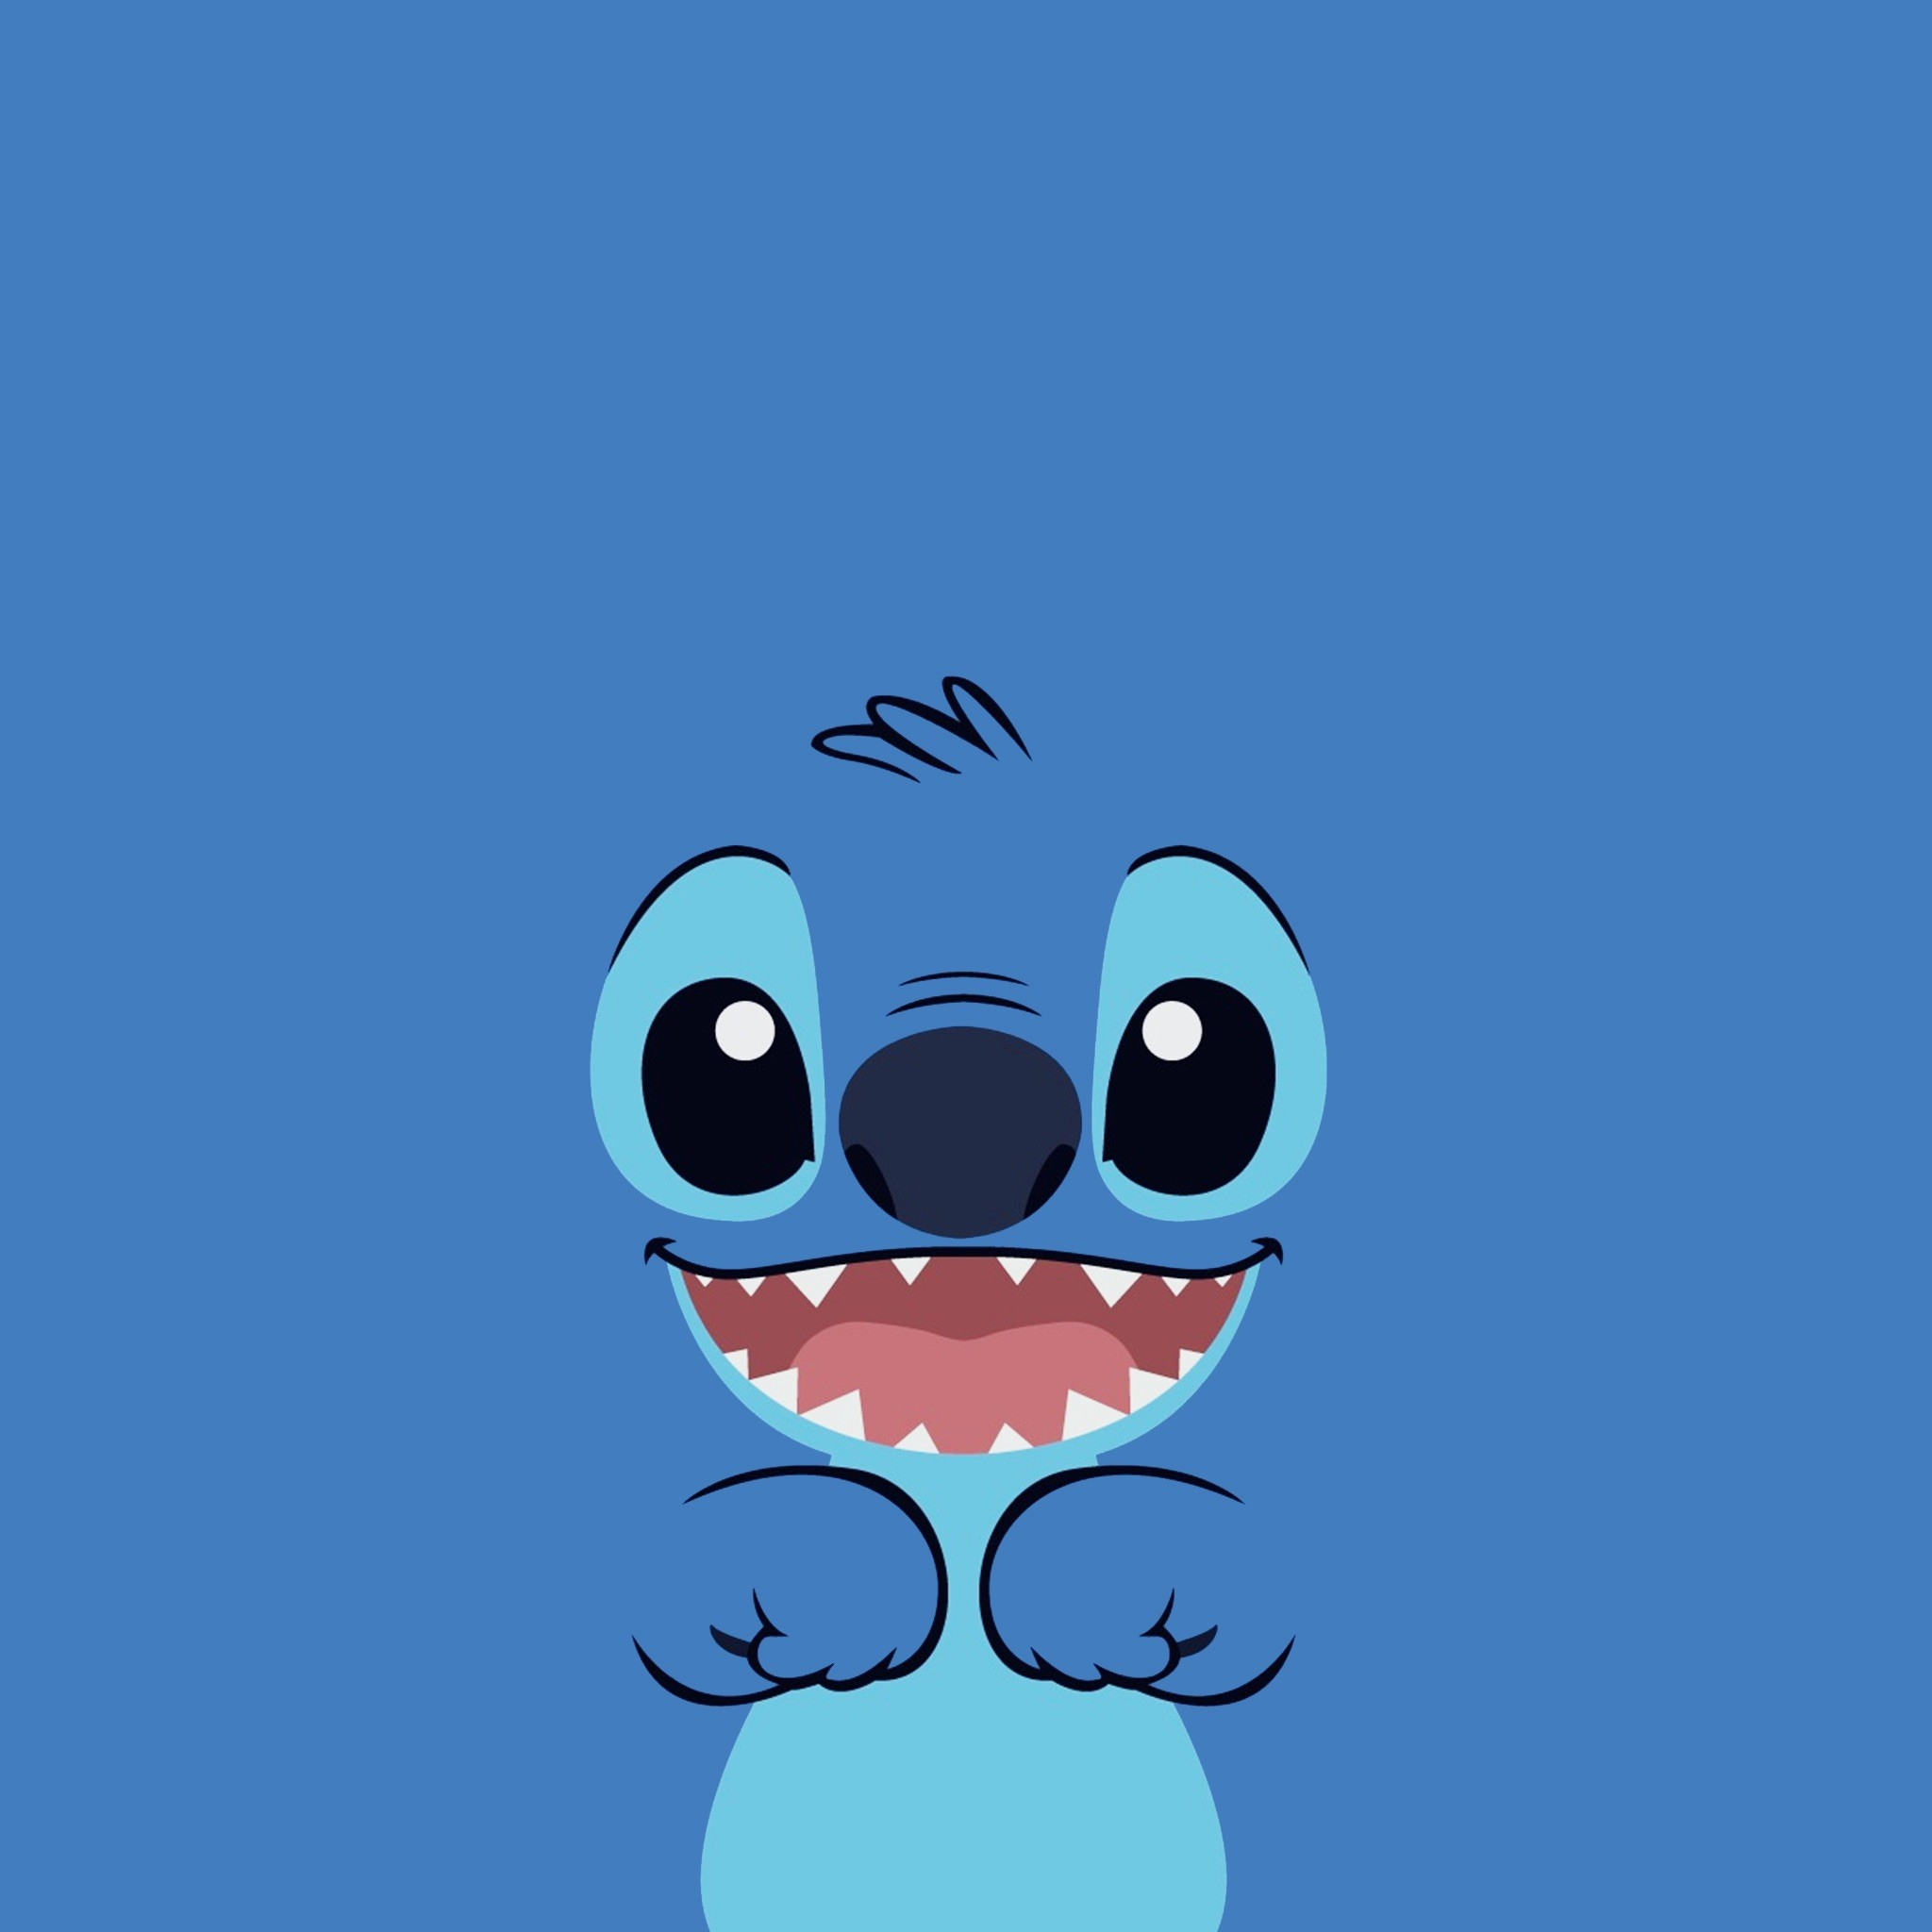 Cute tumblr wallpapers background pictures jpg 2048x2048 Adorable wallpapers tumblr